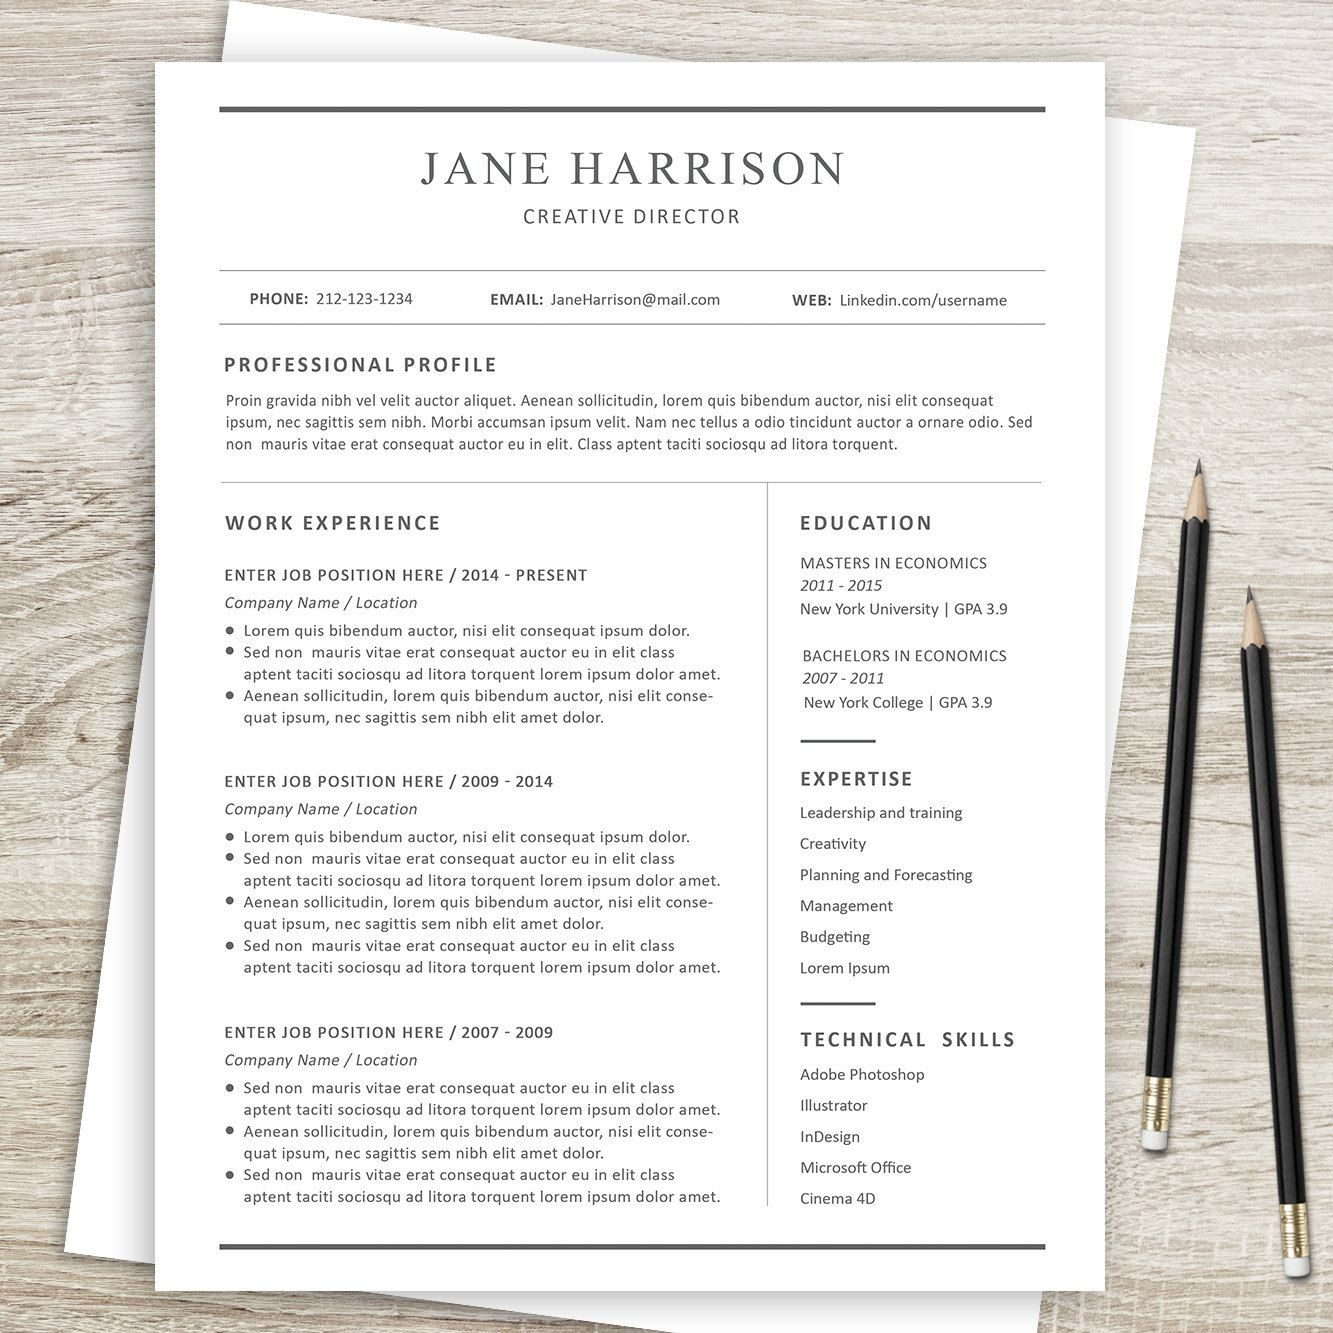 Resume Reference Page Template Resume Template 21  Simple Resume Template  Clean Resume Design